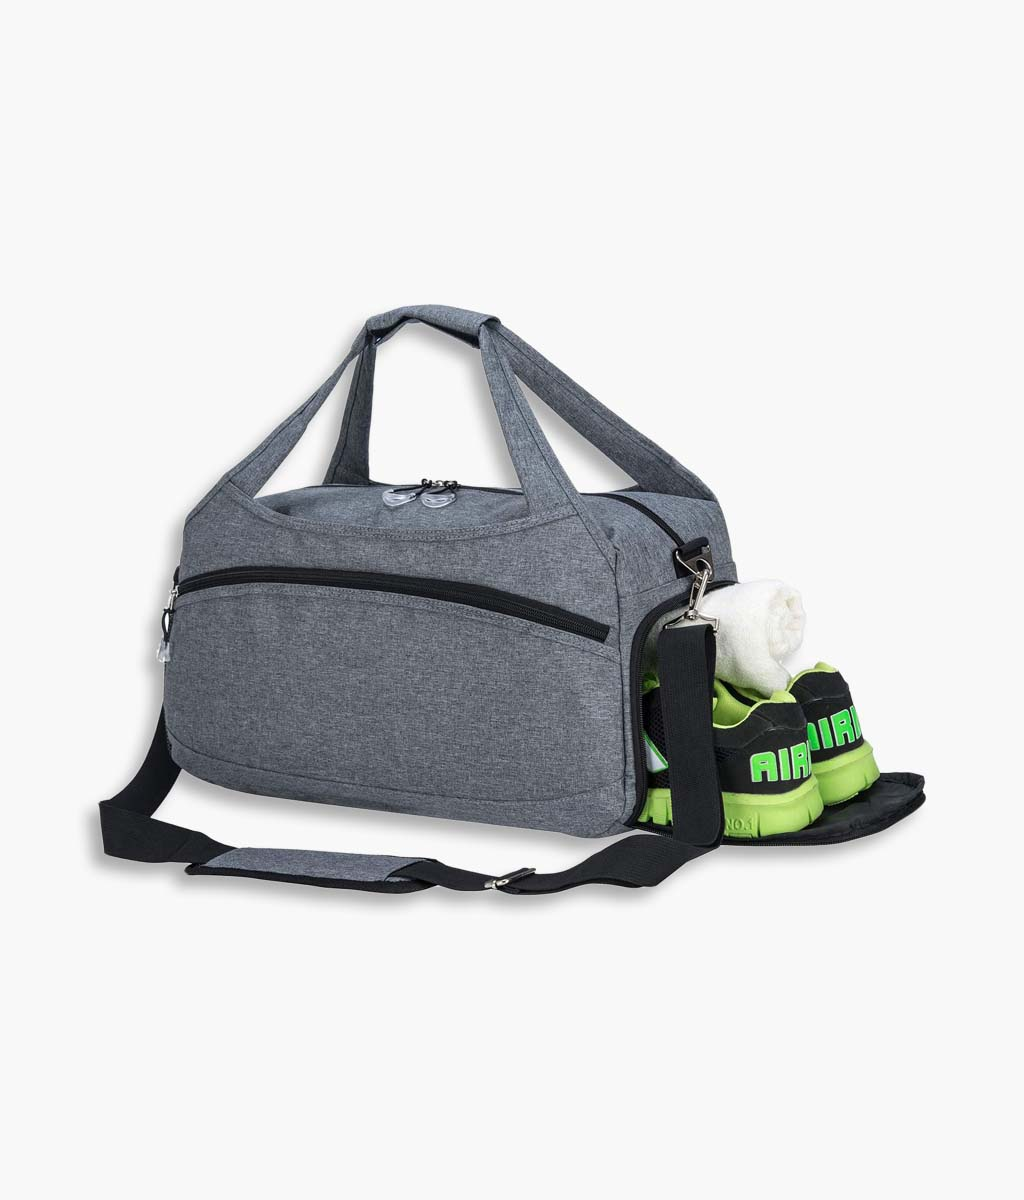 Sports Travel Duffel Bag with Shoes Pocket